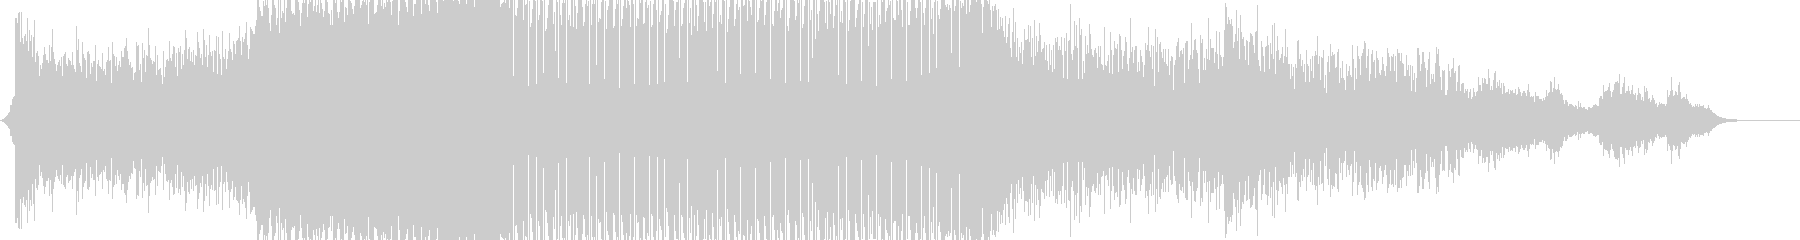 A tough EDM for video and commercials's unreproduced waveform